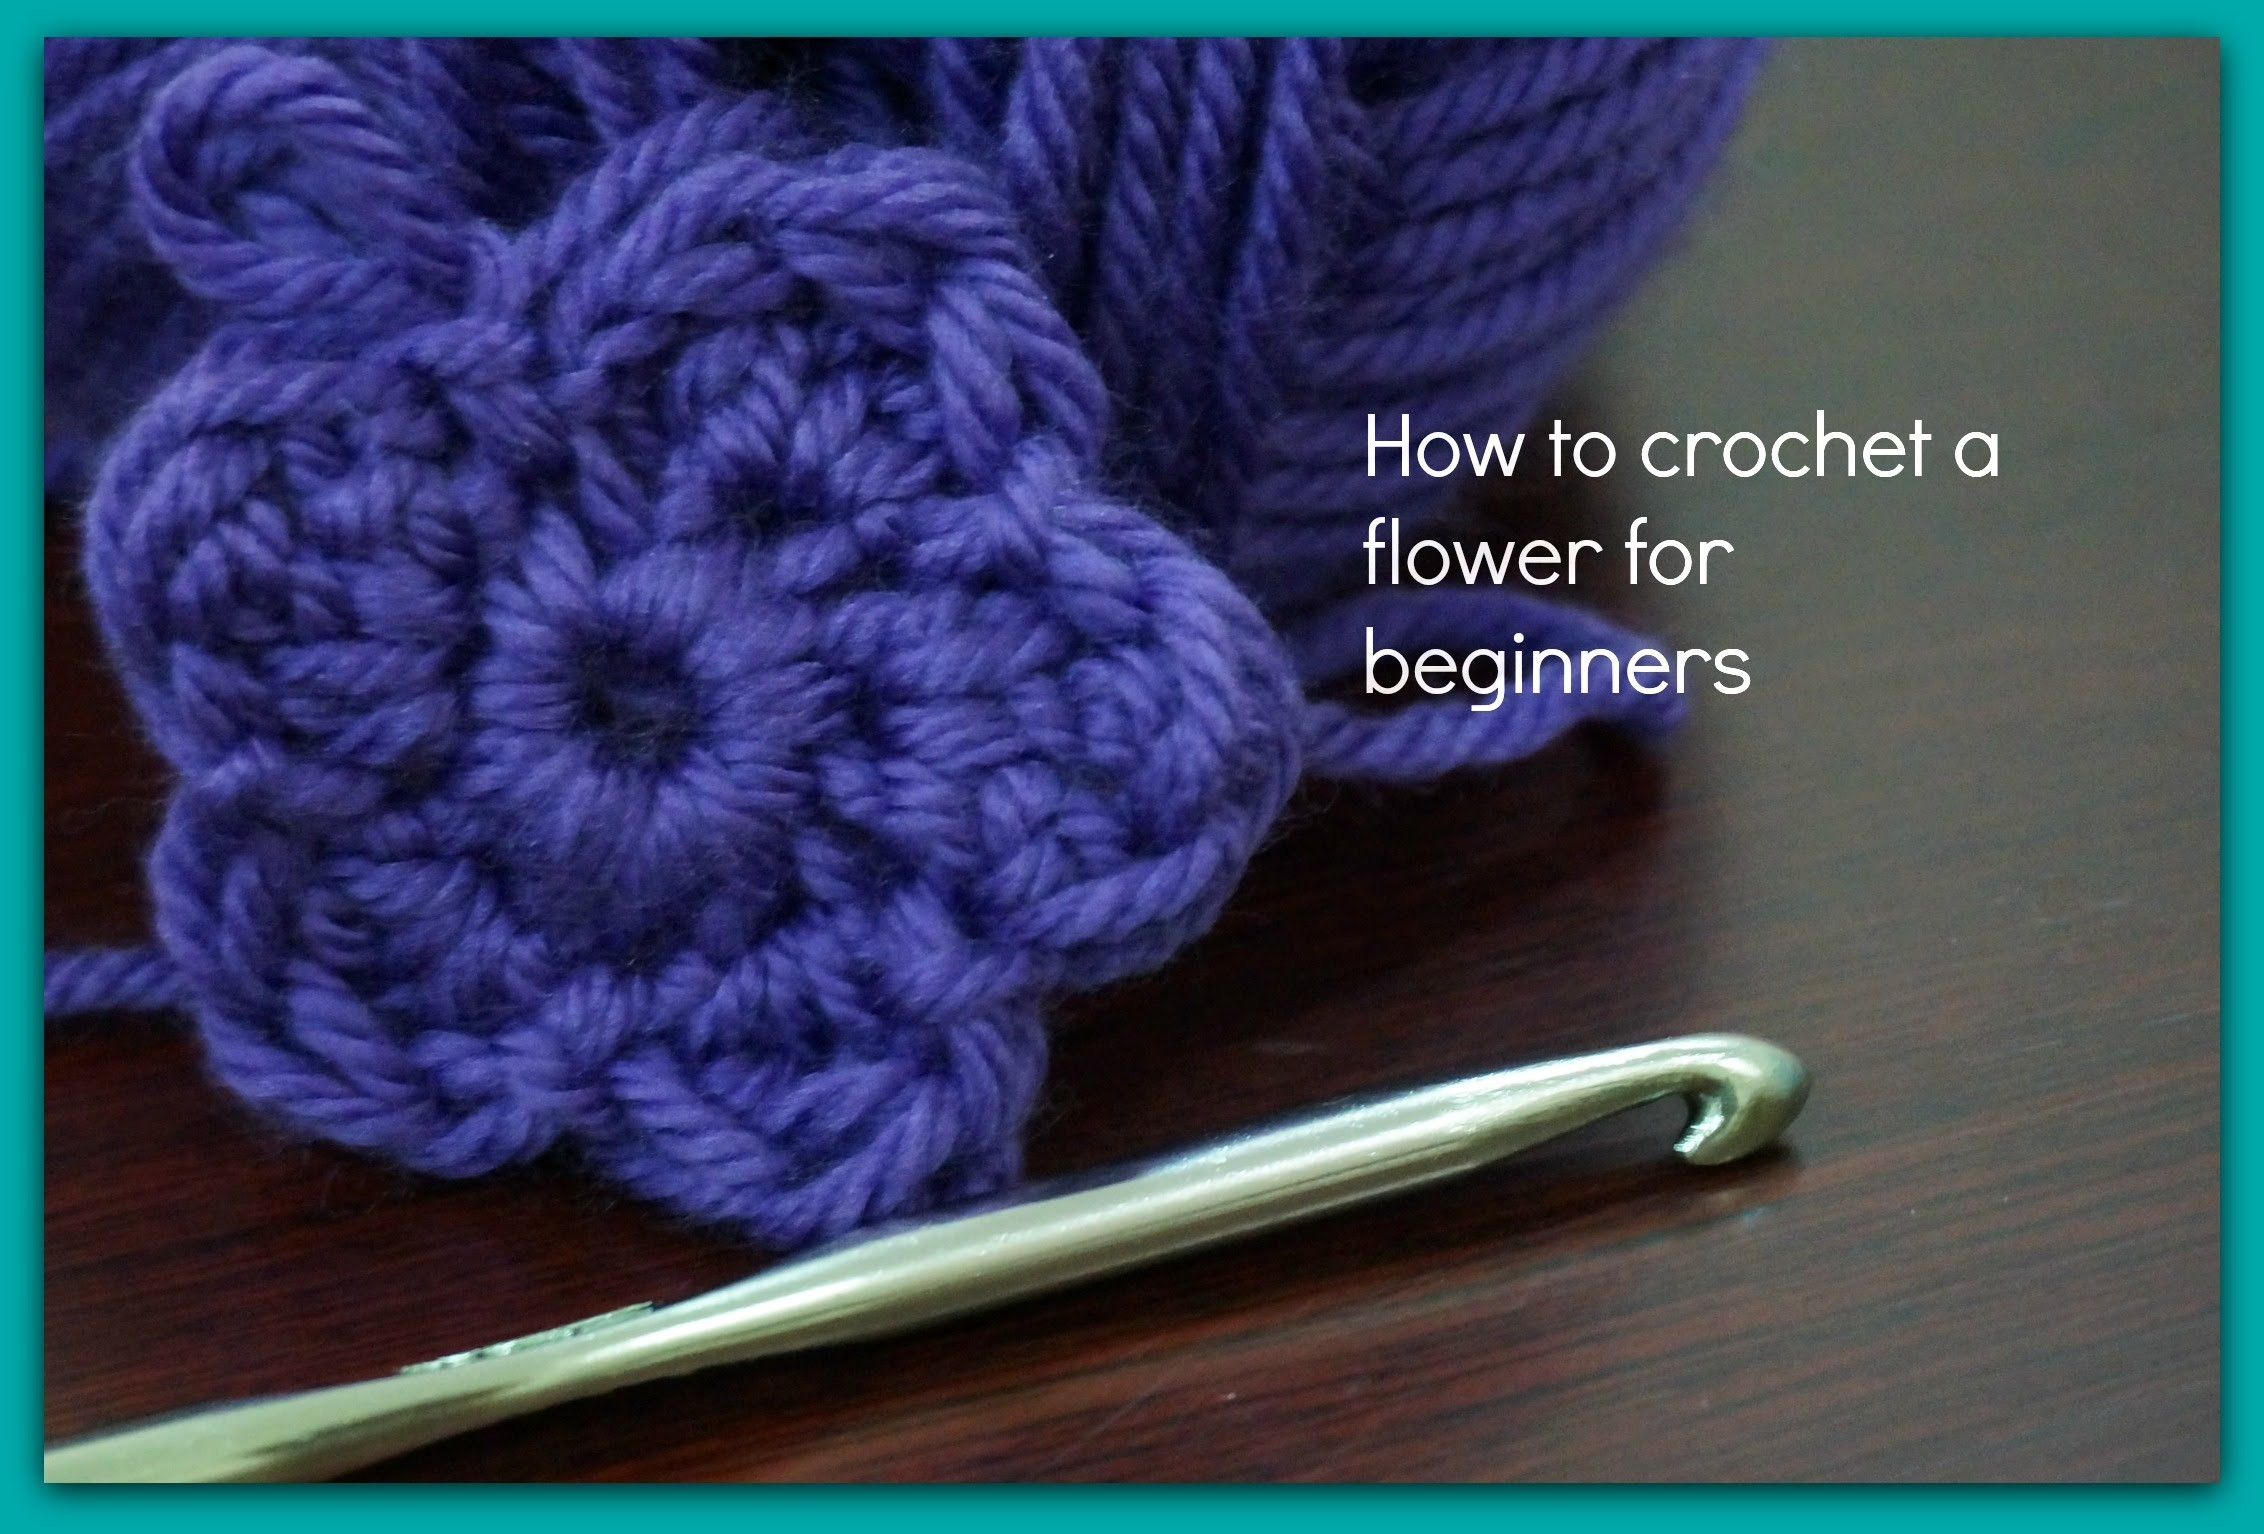 How To Crochet Basics : How to crochet a flower for beginners, My Crafts and DIY Projects